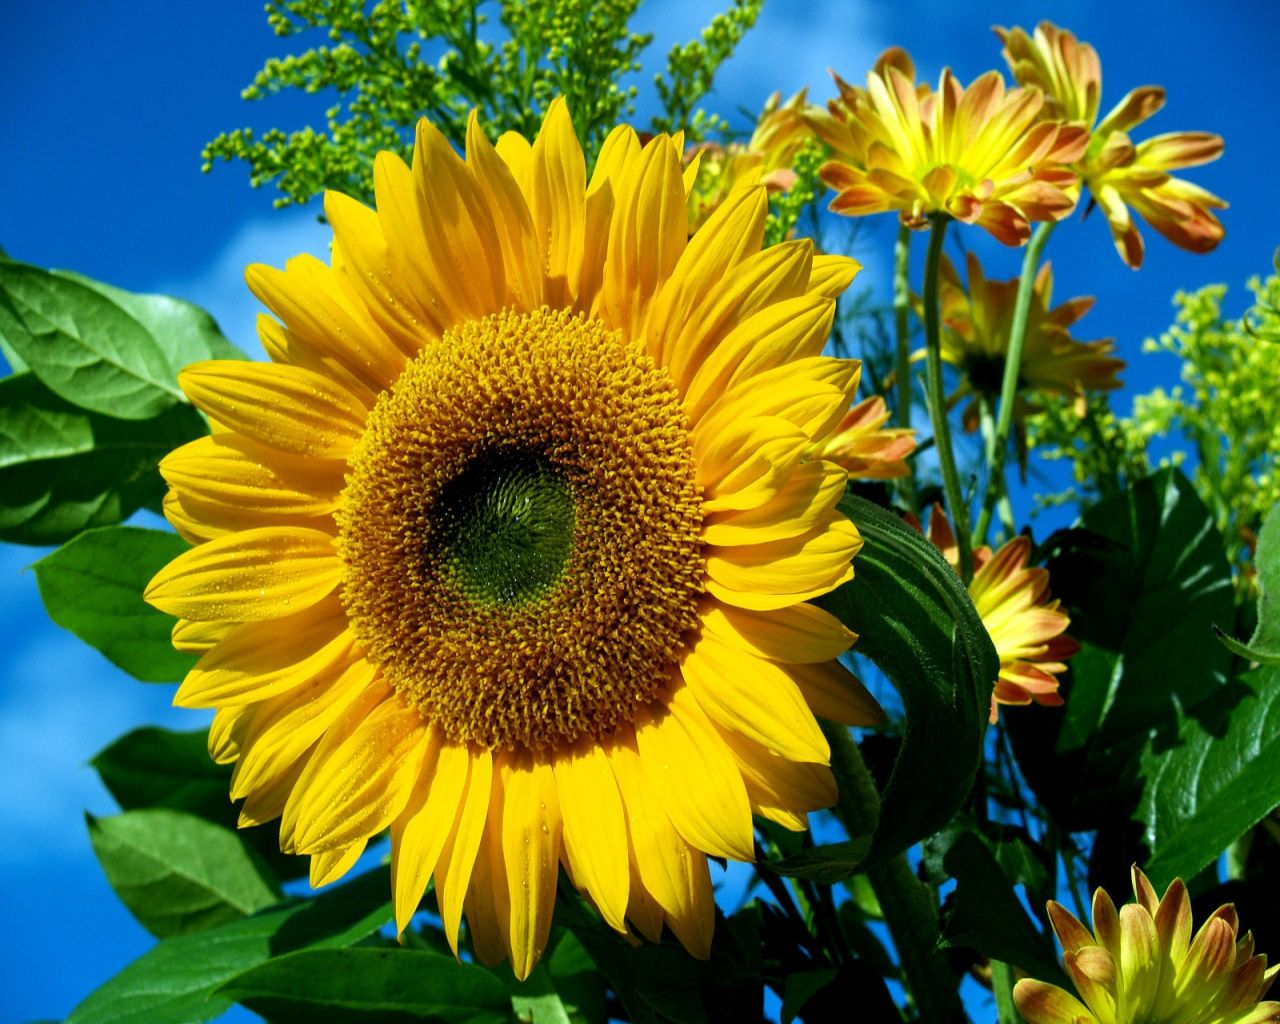 Bright blue and yellow floral backgrounds bright sun flower bright blue and yellow floral backgrounds bright sun flower against sky wallpaper there is izmirmasajfo Choice Image